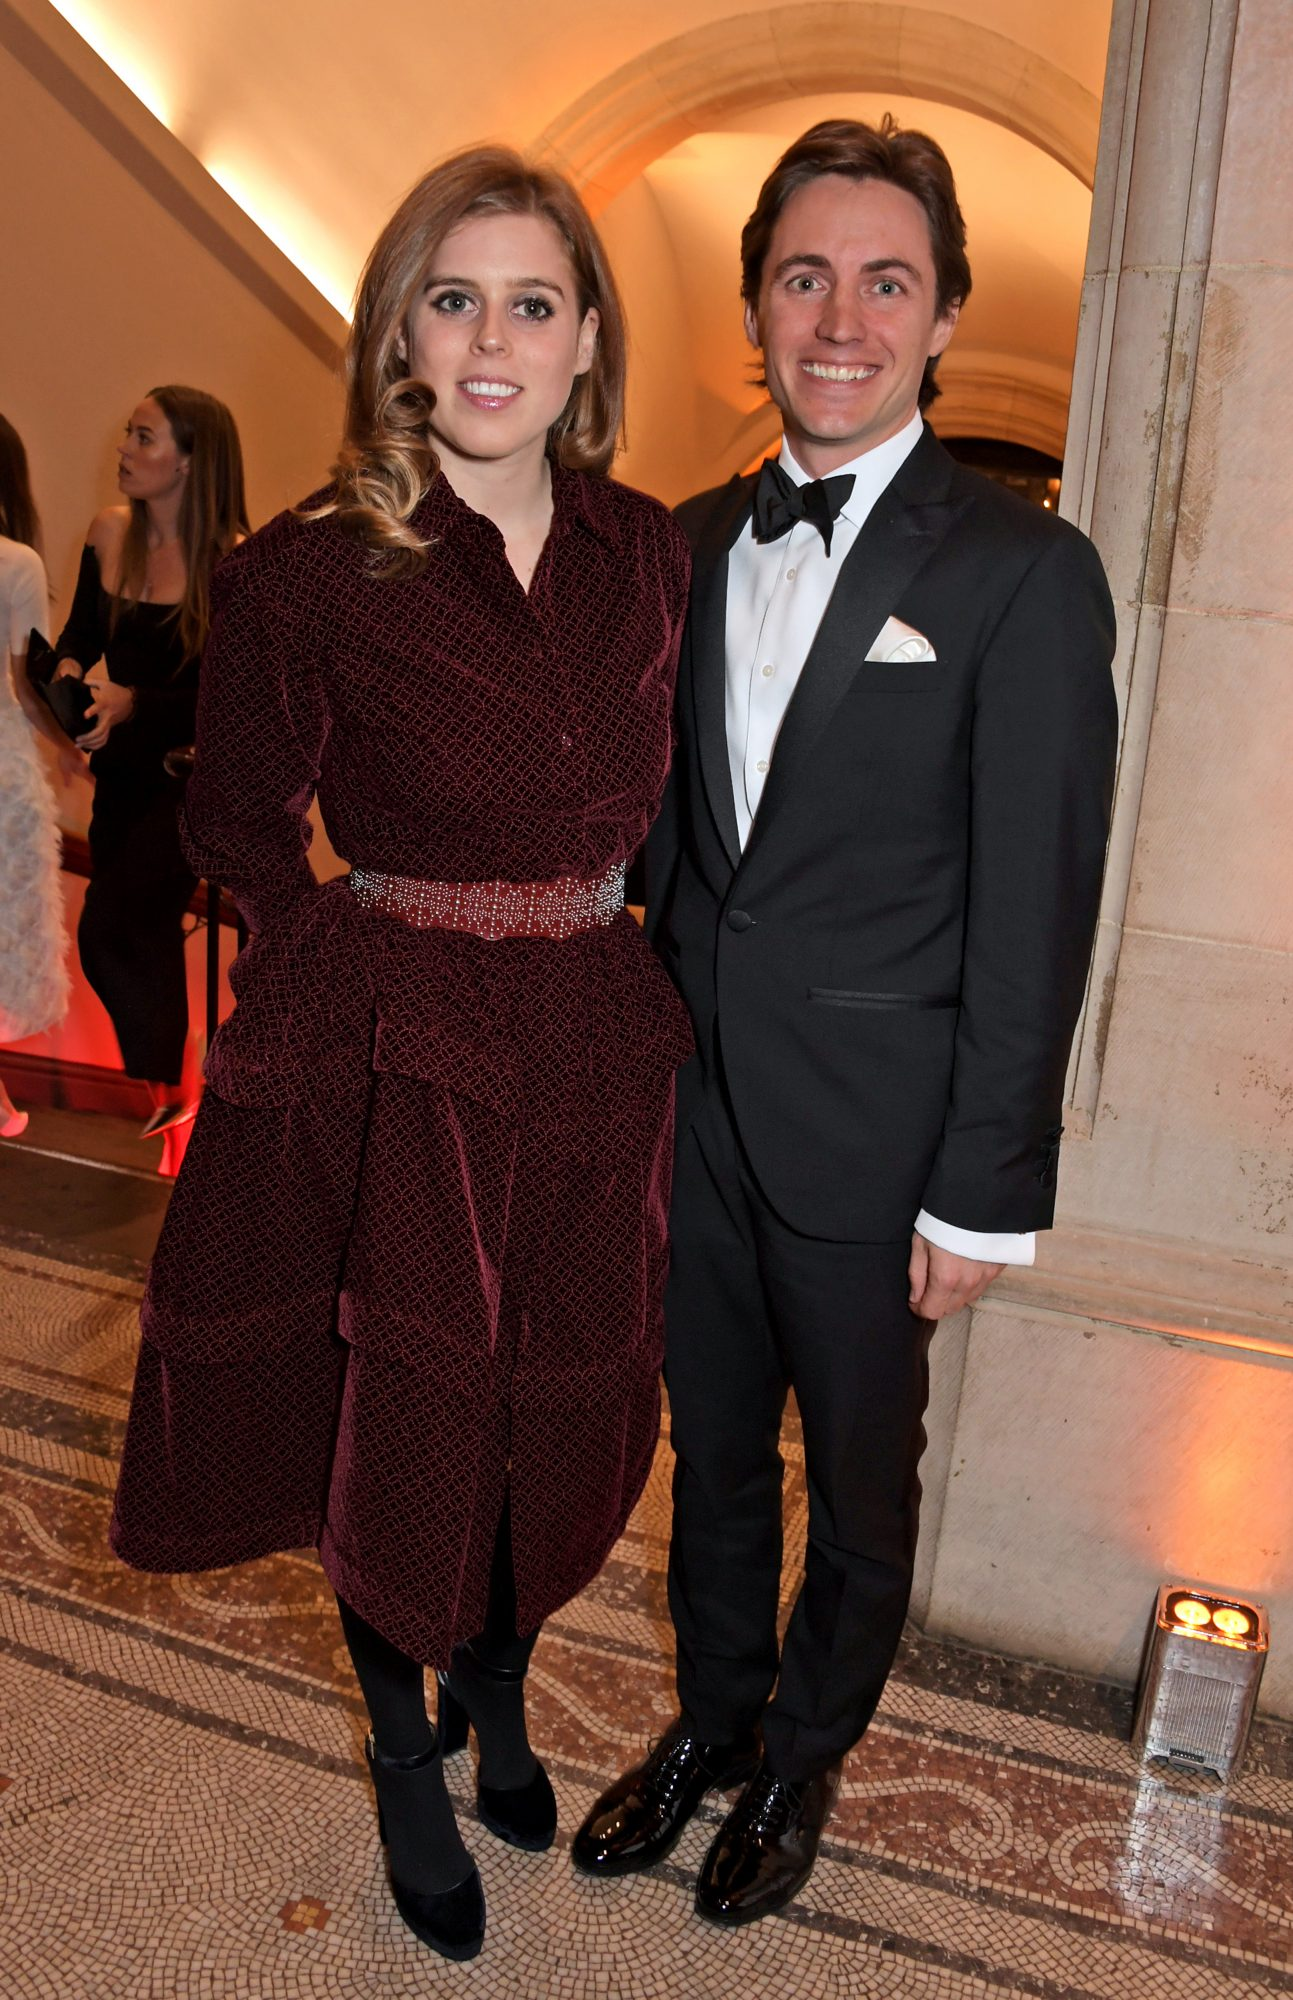 Princess Beatrice and Edoardo Mapelli Mozziconi